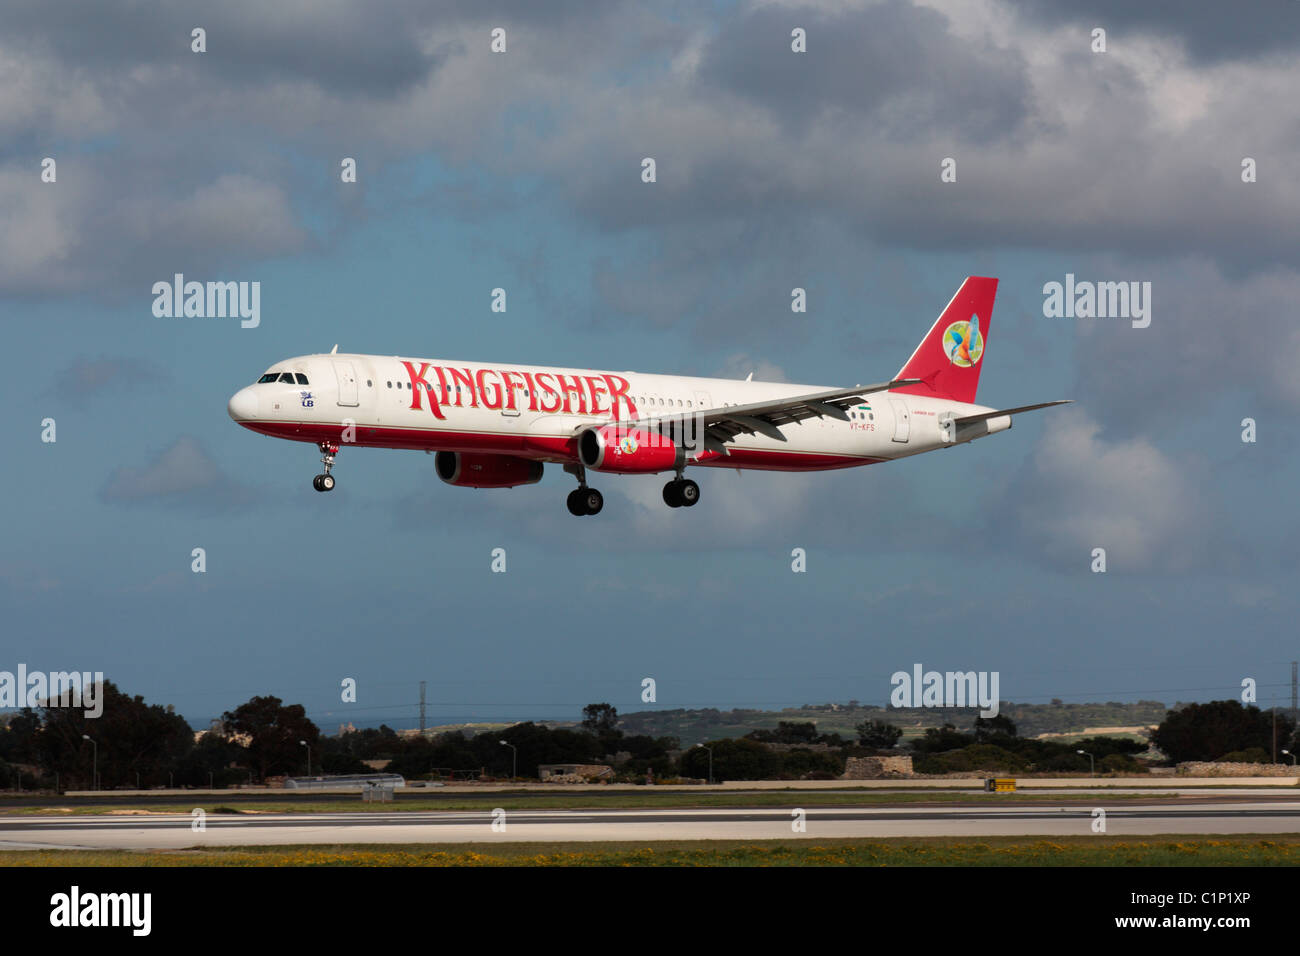 Kingfisher Airlines Airbus A321 Arriving In Malta To Pick Up Indian Evacuees From Libya During The